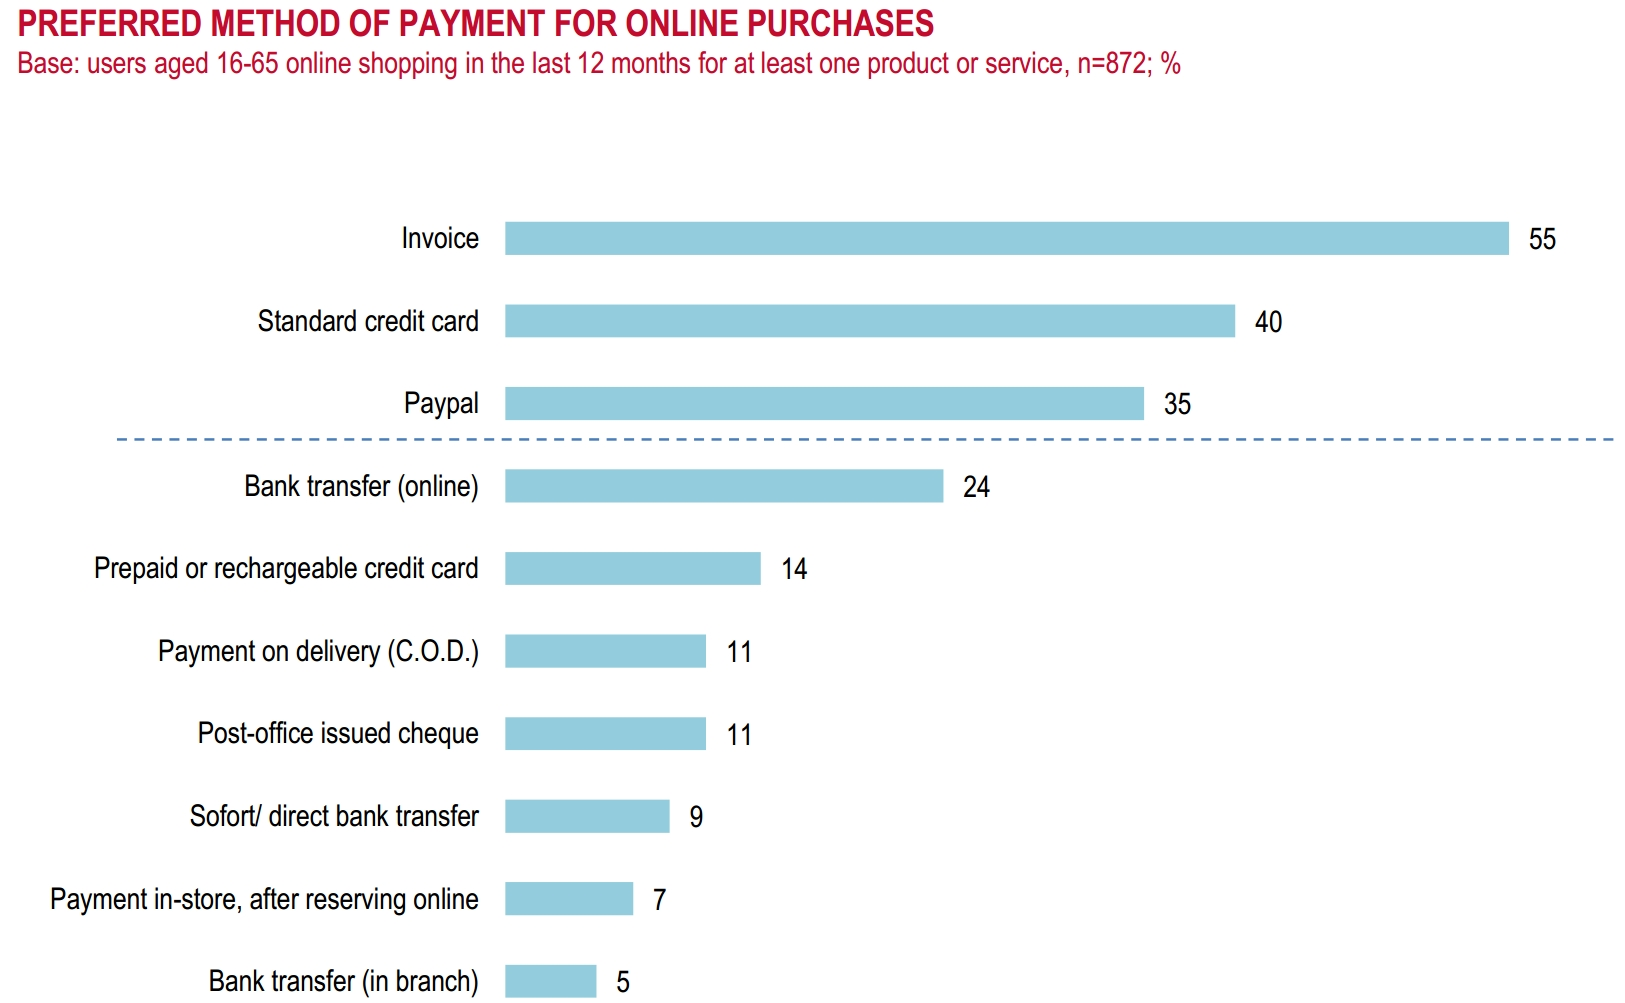 Preferred payment methods in ecommerce industry Switzerland